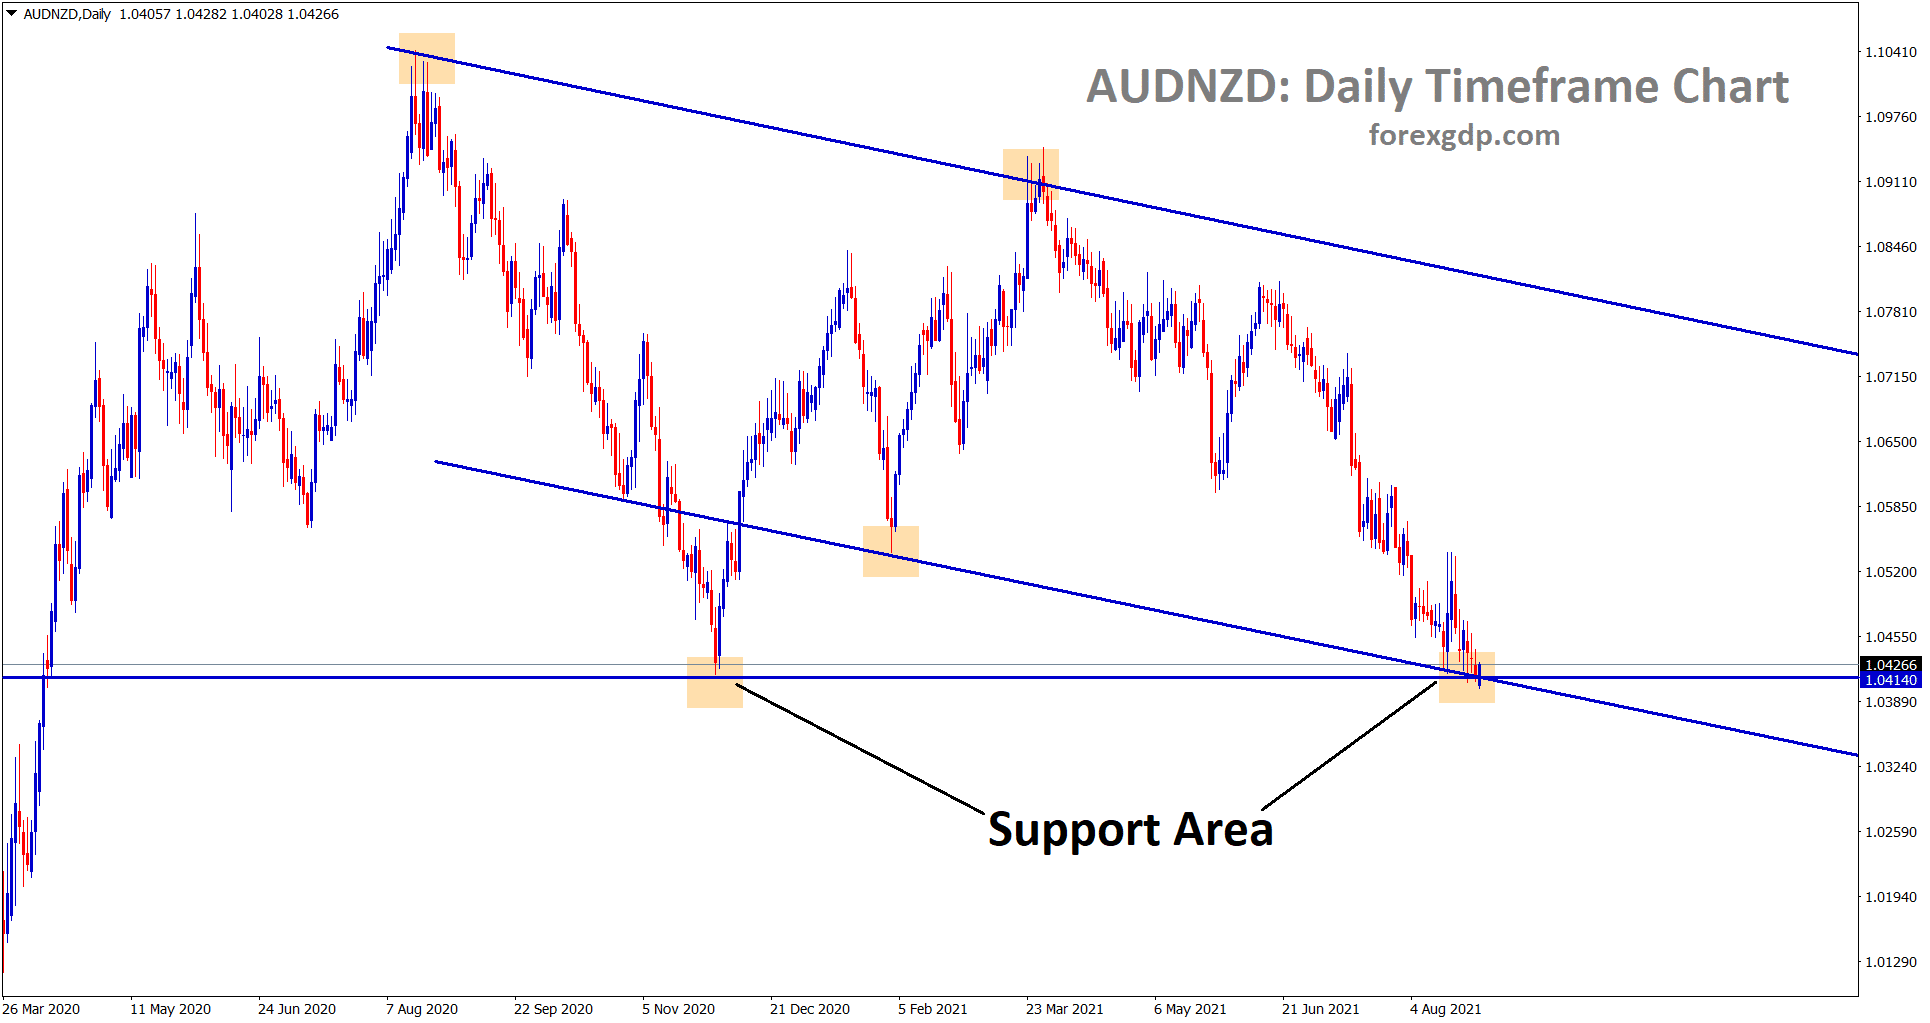 audnzd standing exactly at the support area of the descending triangle and channel line